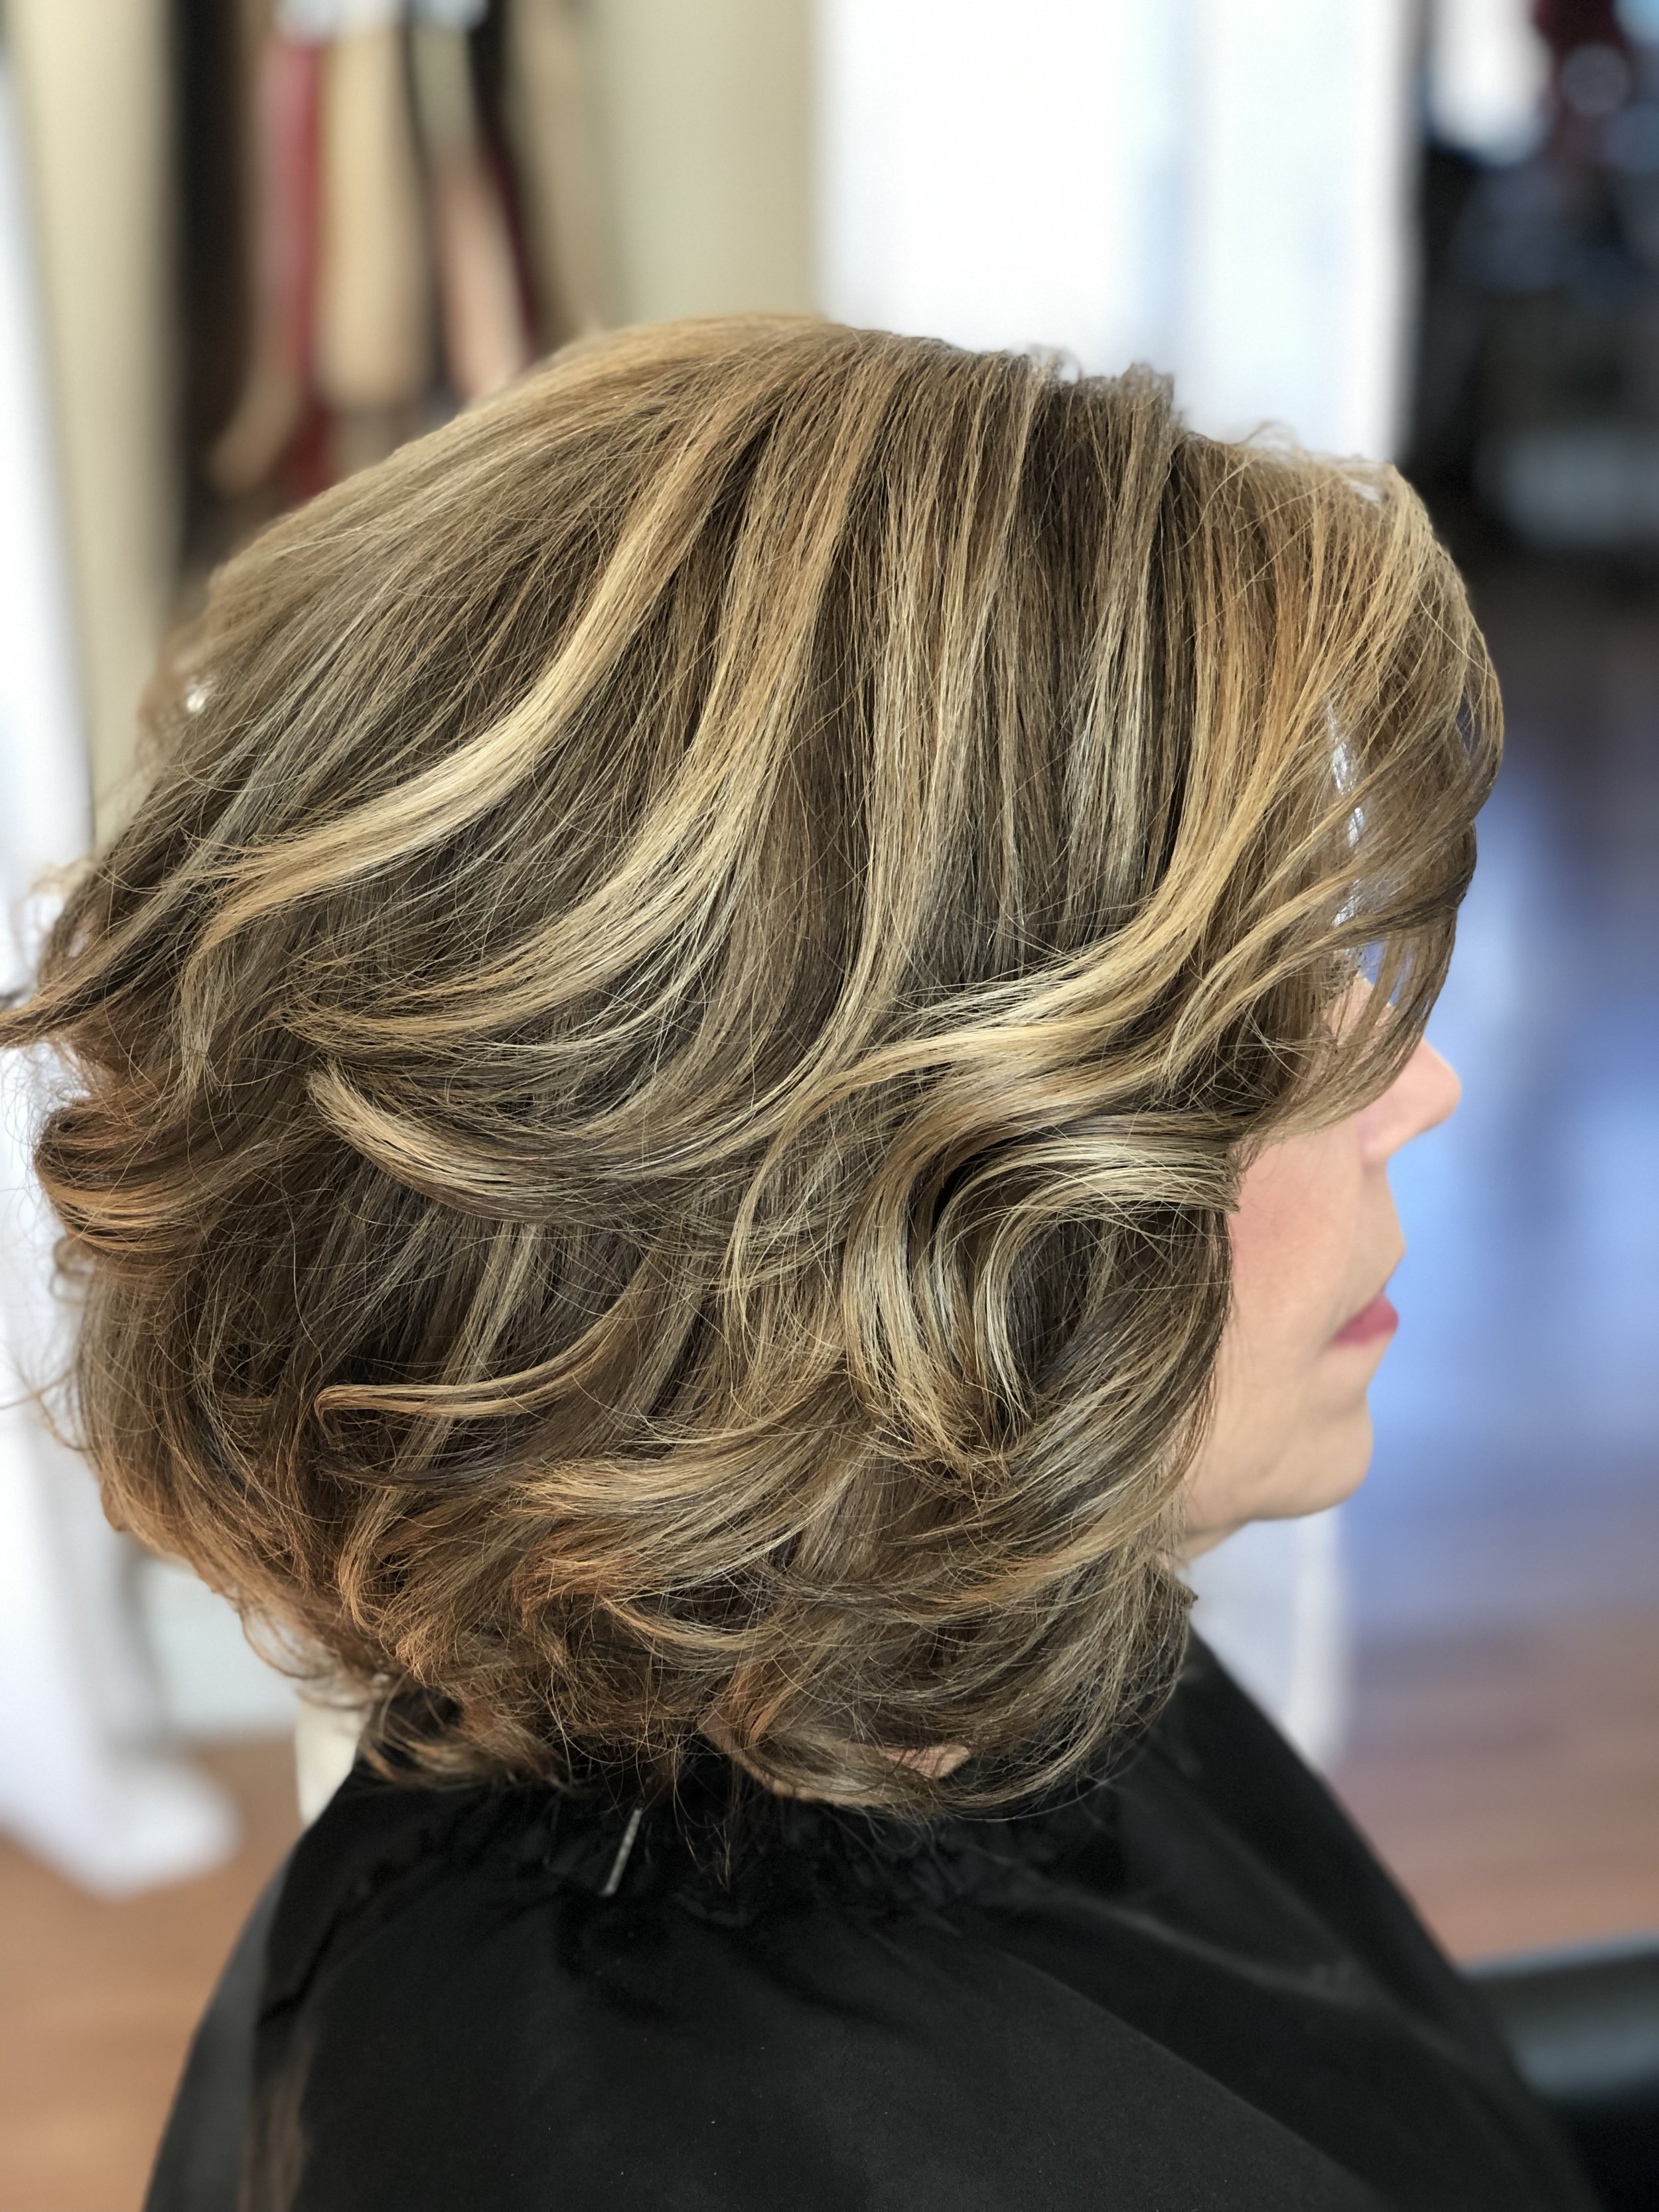 hair coloring - From soft brunettes to icy blondes to fiery reds to fantasy creative coloring. Beautiful hues to accent your style